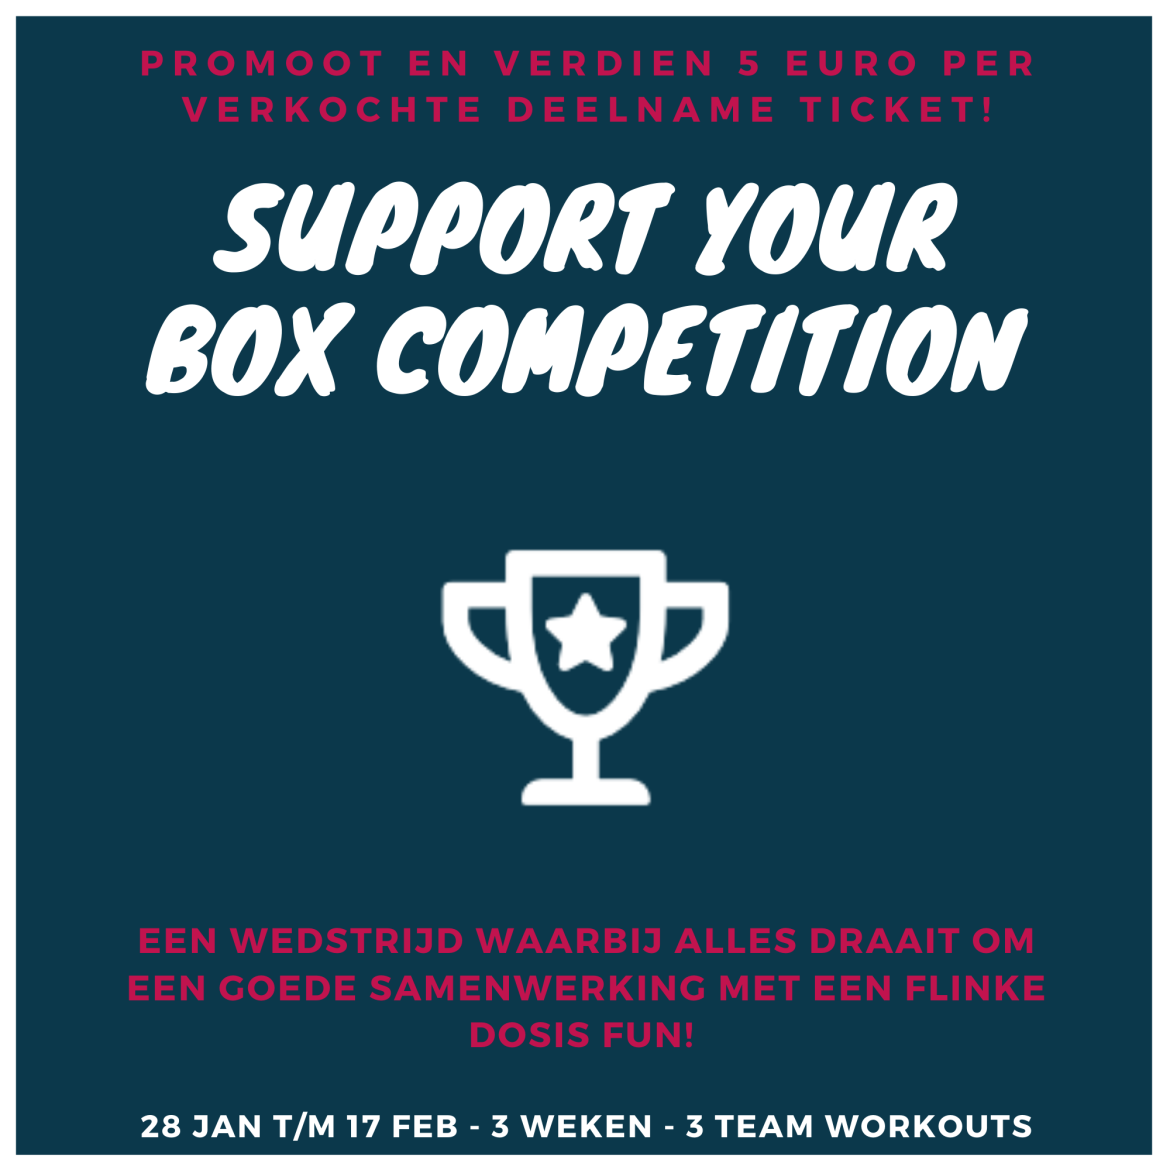 Support your box competitie